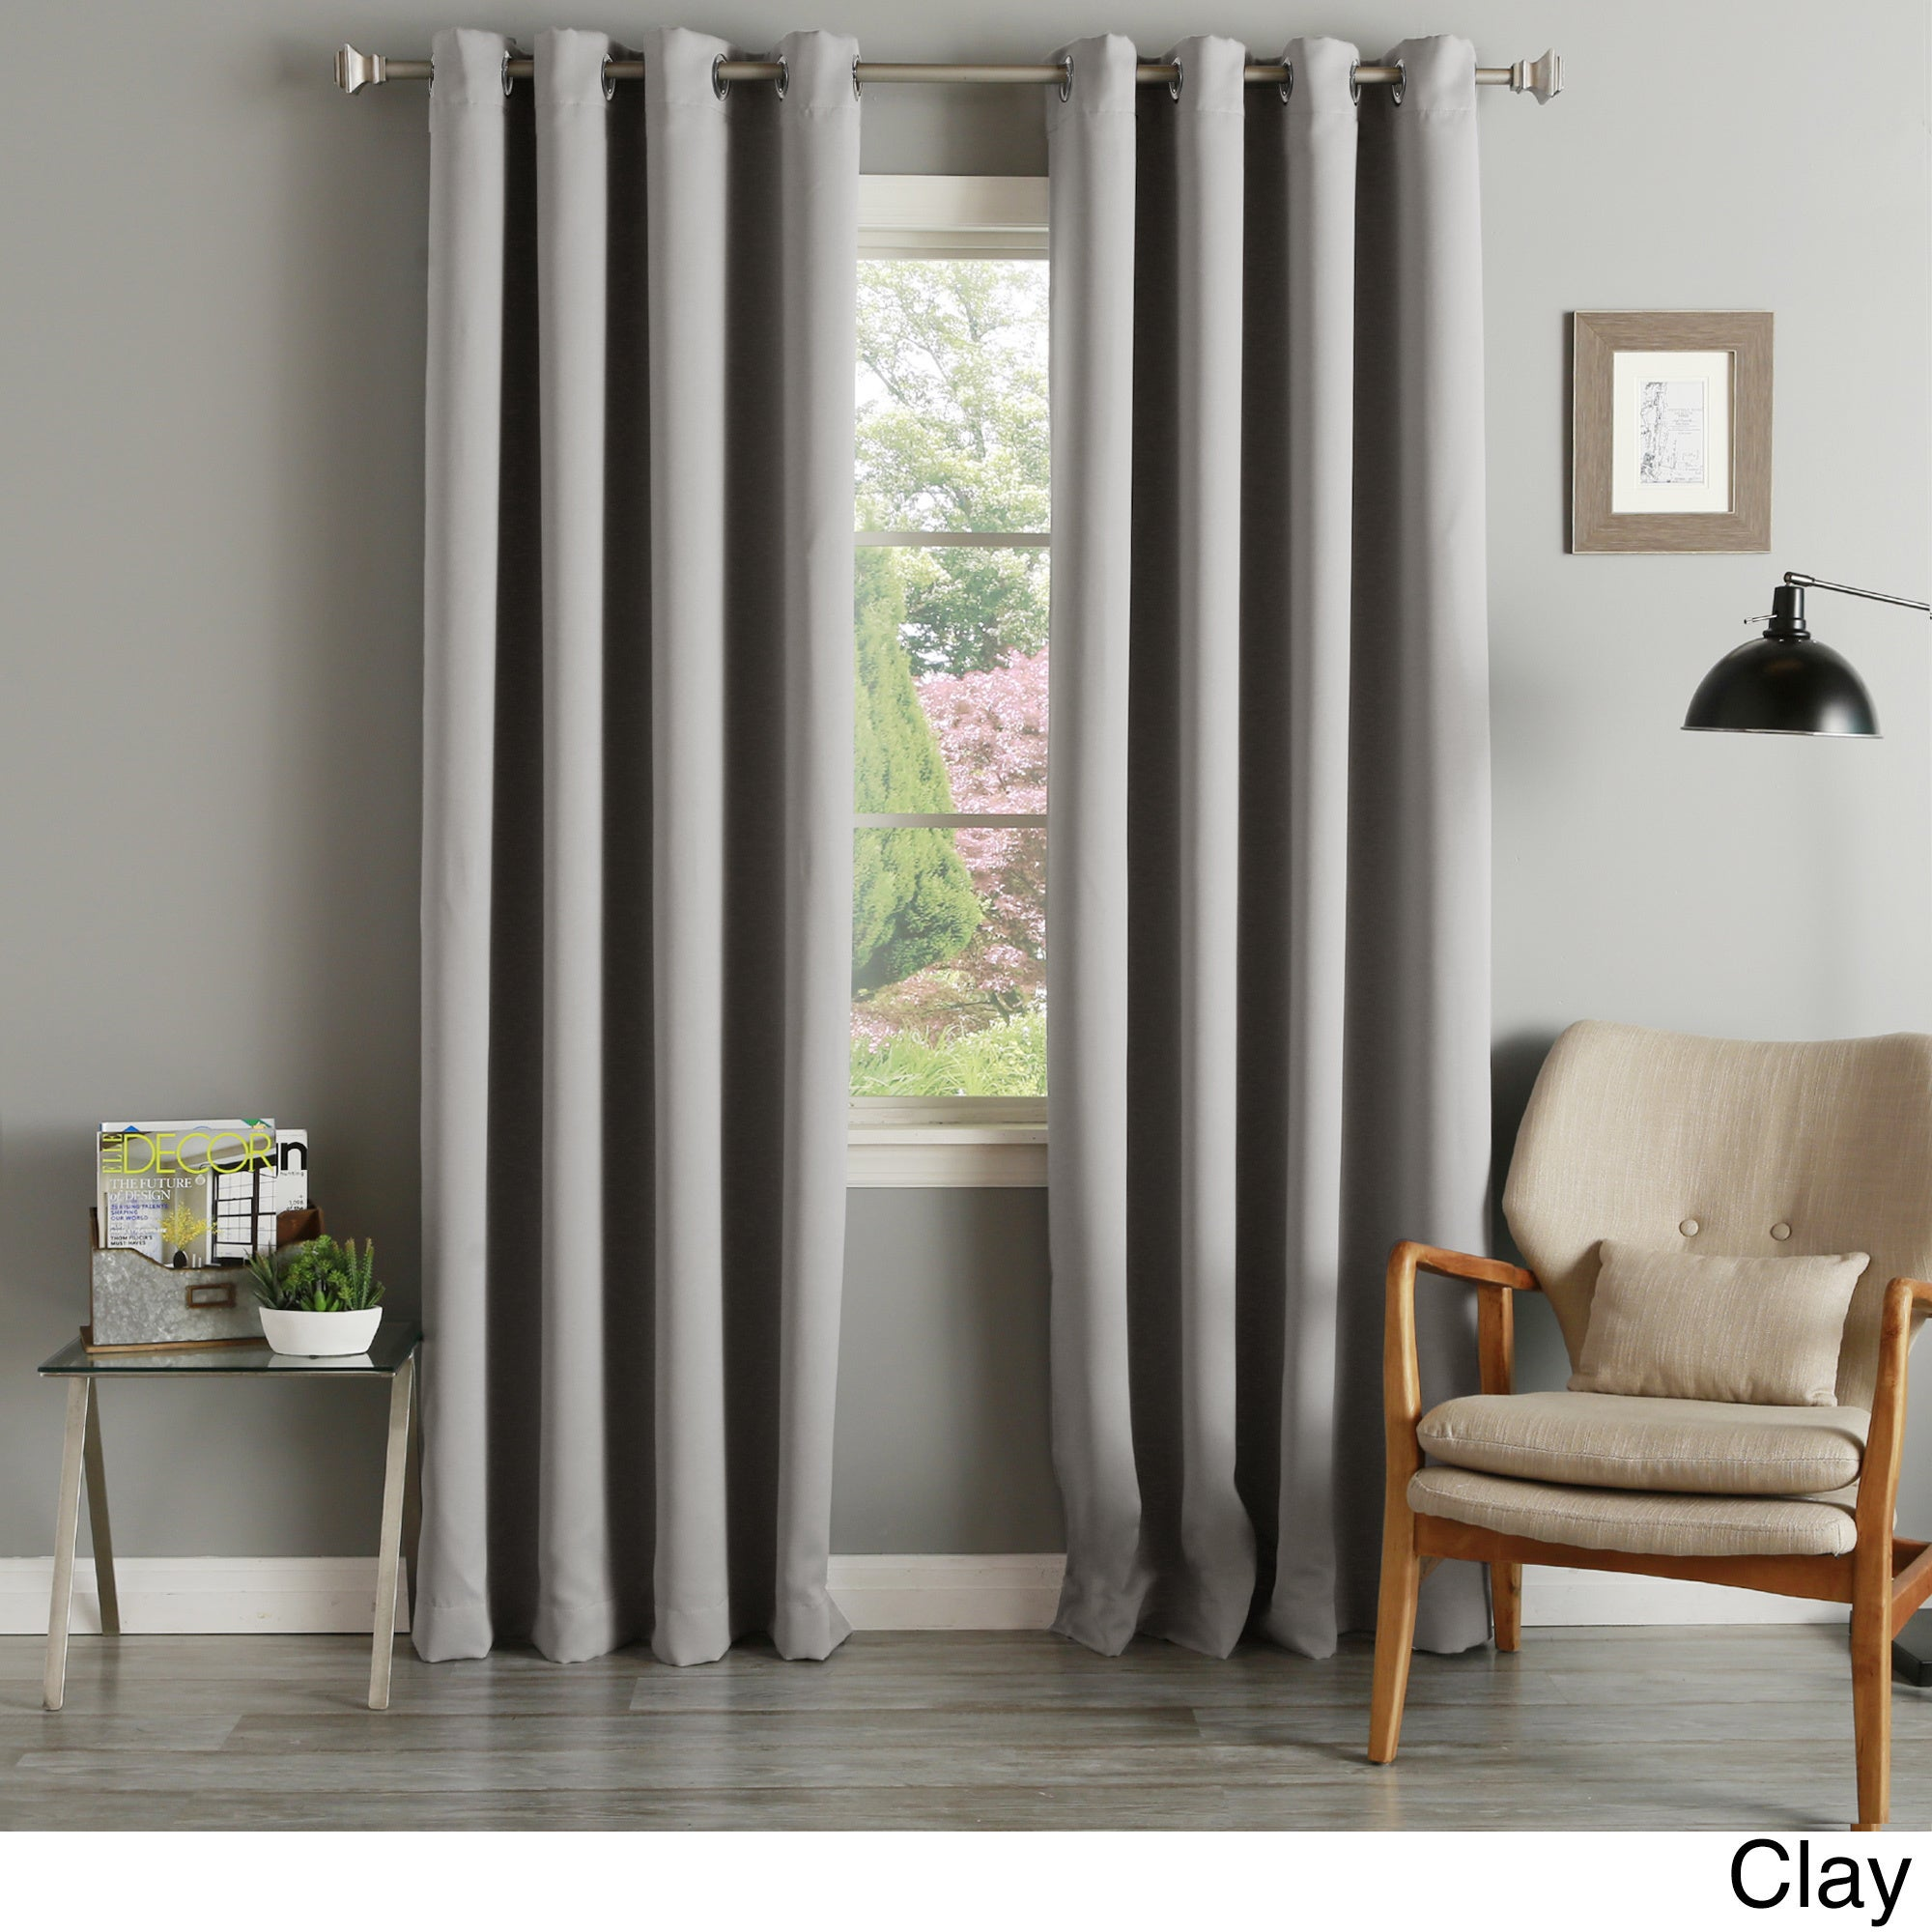 extra french decorative of rods bar size drapes photo rod bedroom full double long door for curtains layer singular bronze inch room living curtain